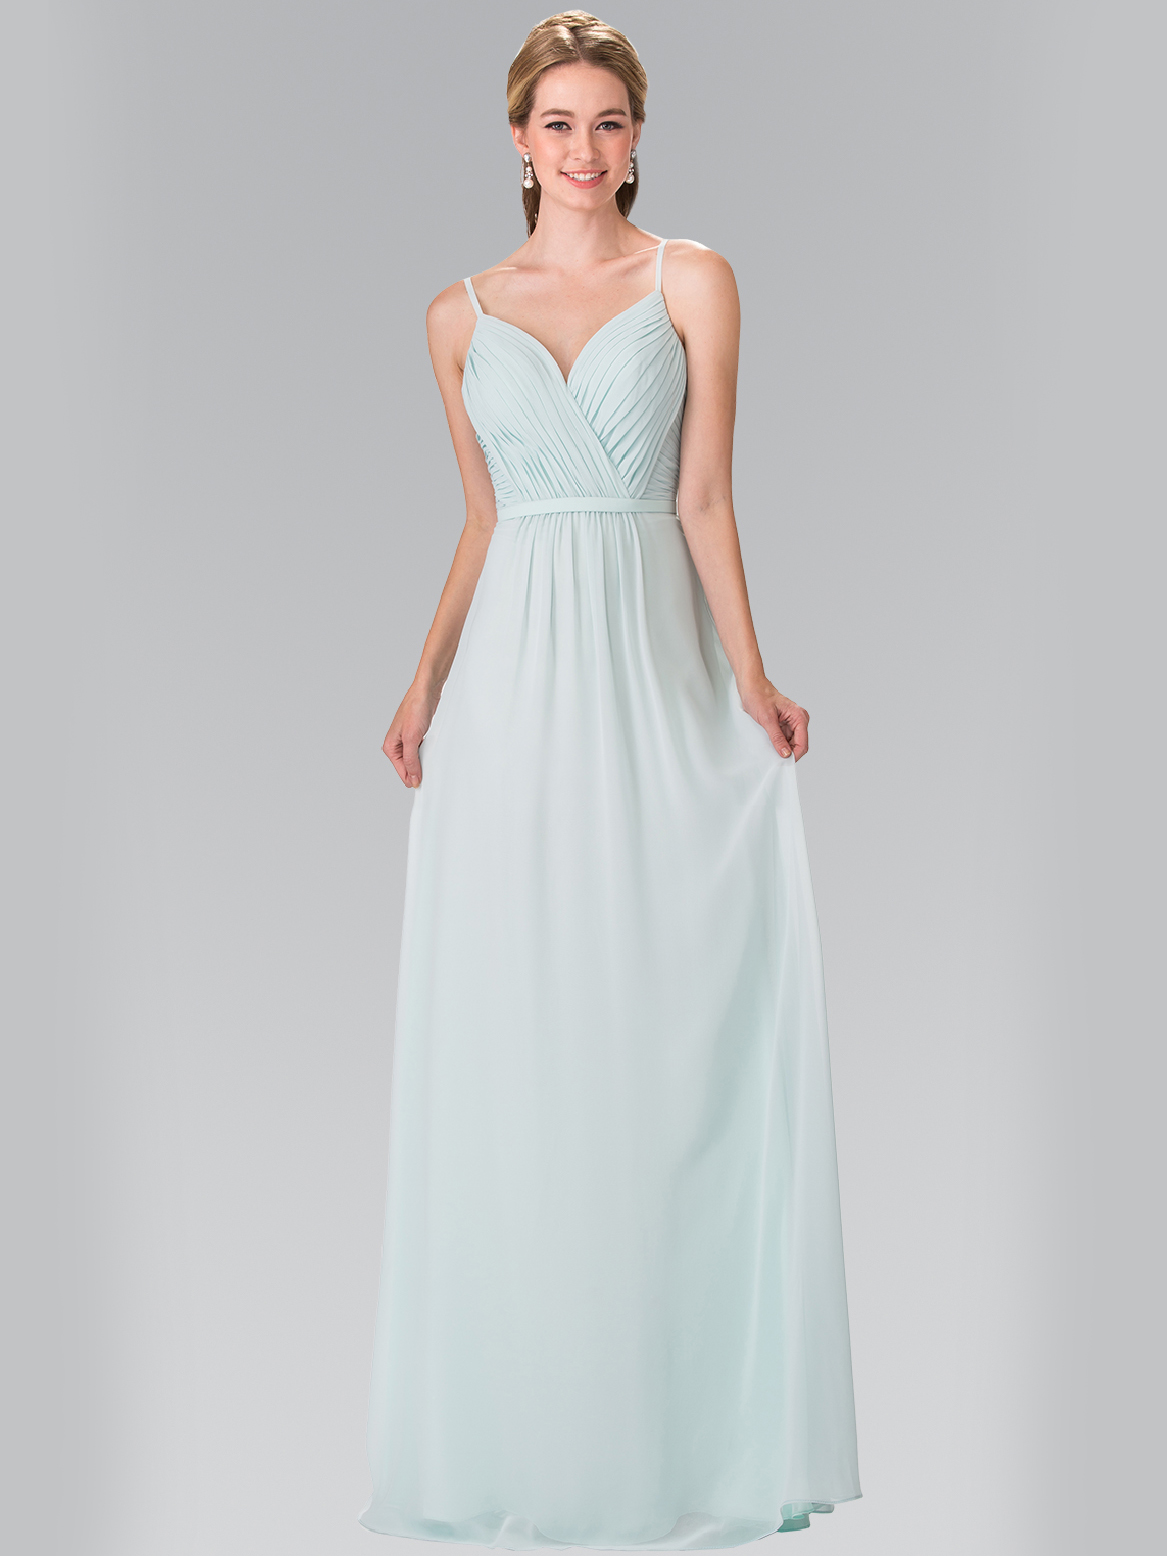 Chiffon bridesmaid dress with spaghetti straps sung boutique la 50 2374 chiffon bridesmaid dress with spaghetti straps mint front view medium ombrellifo Image collections